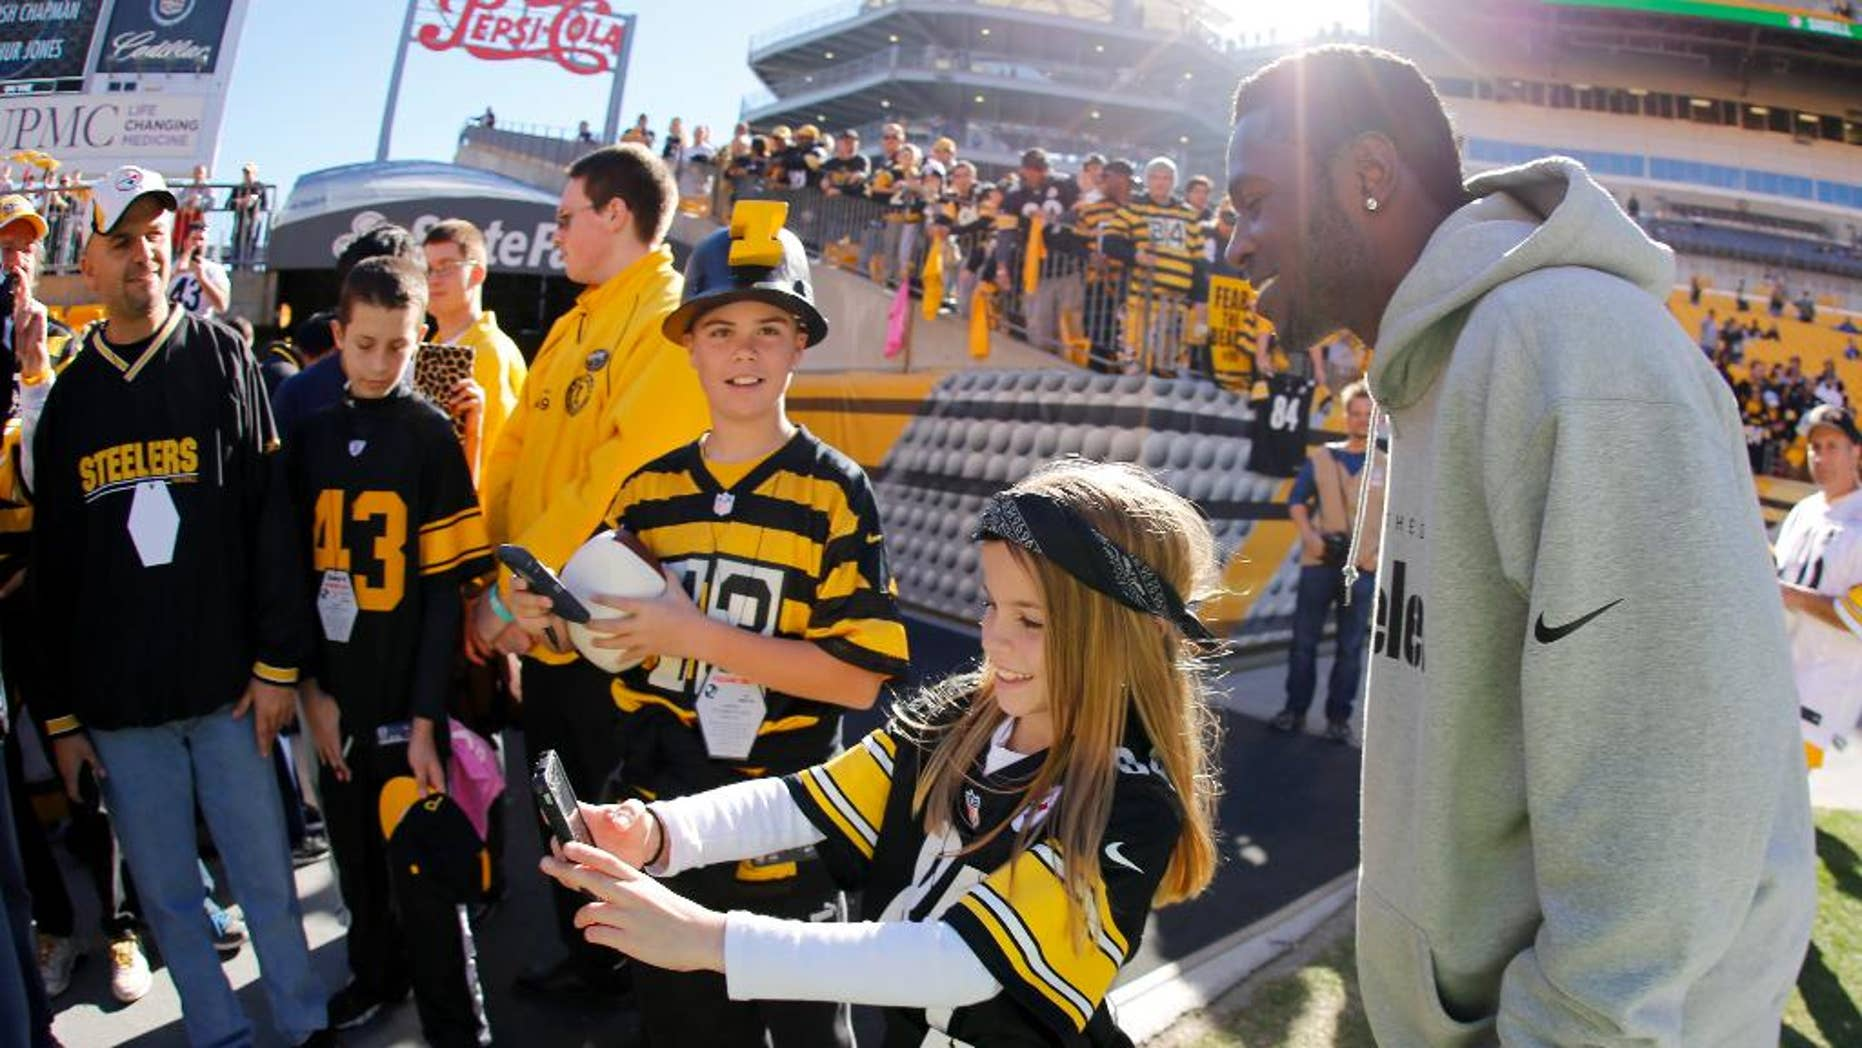 Pittsburgh Steelers wide receiver Antonio Brown, right, has his photo taken with fans during warmups before an NFL football game against the Indianapolis Colts, Sunday, Oct. 26, 2014, in Pittsburgh. (AP Photo/Gene Puskar)